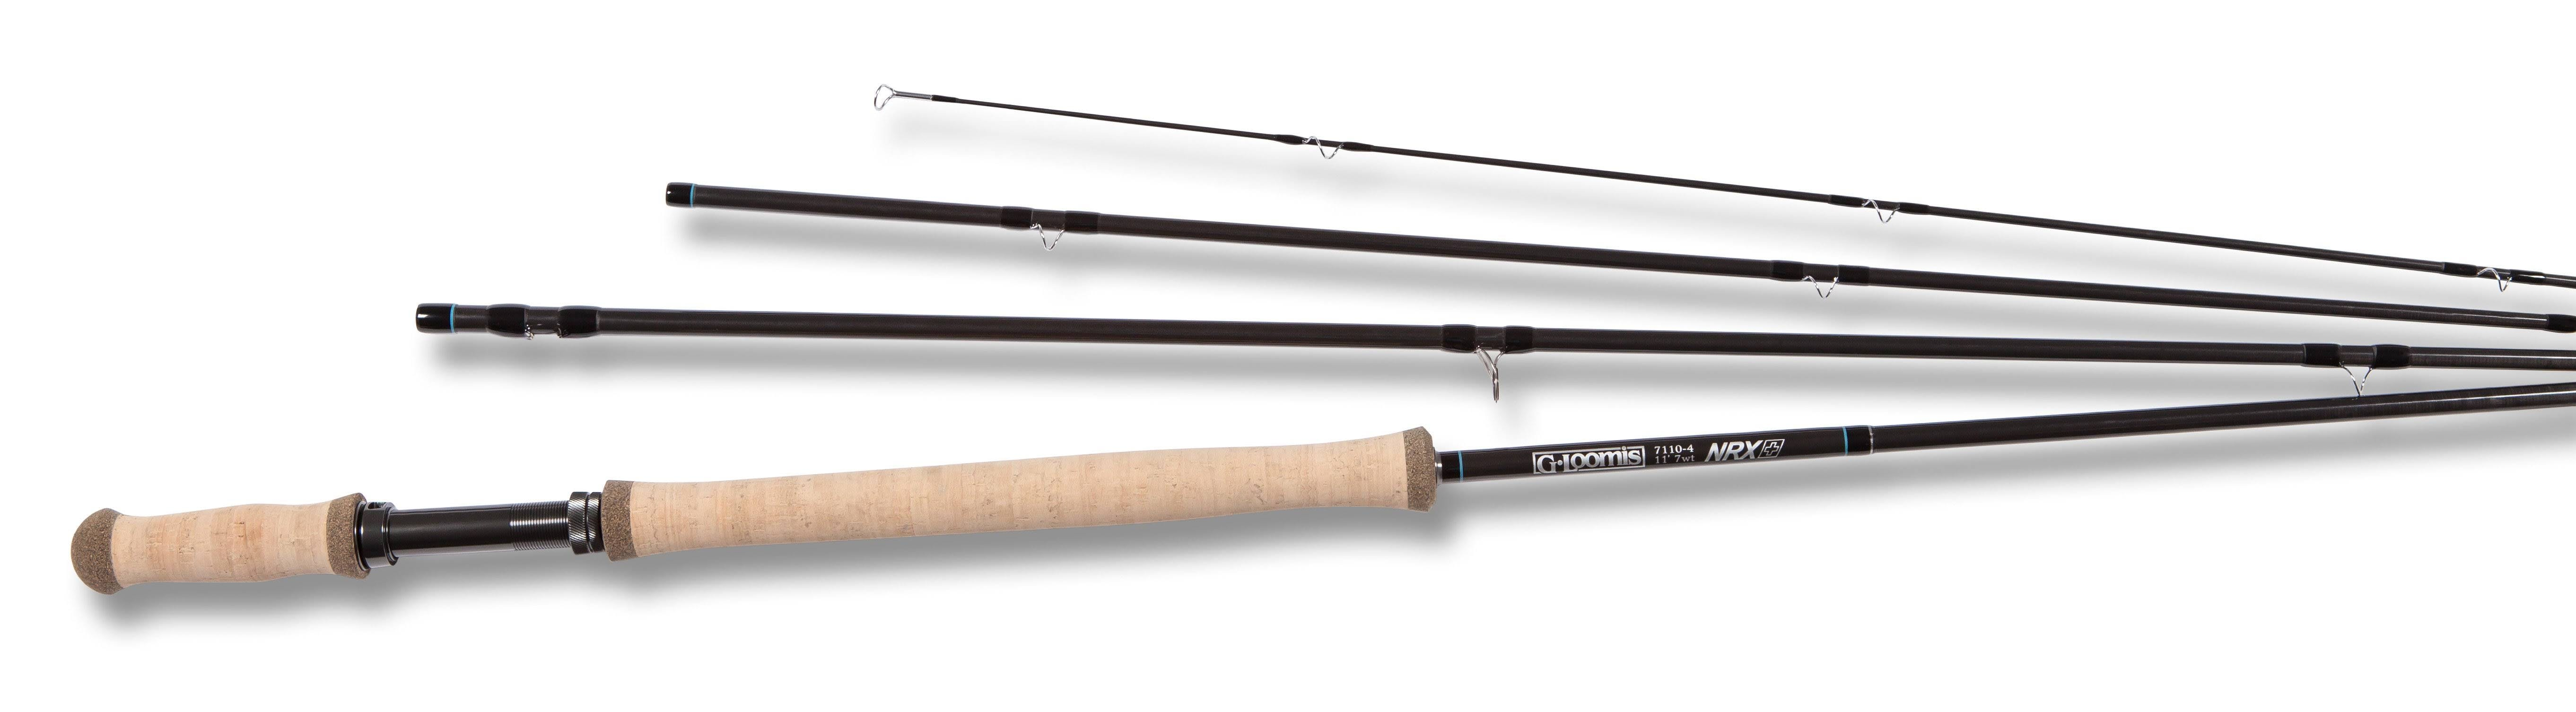 G Loomis NRX+ Switch Rods, 7110-4 - 11' 7 Weight